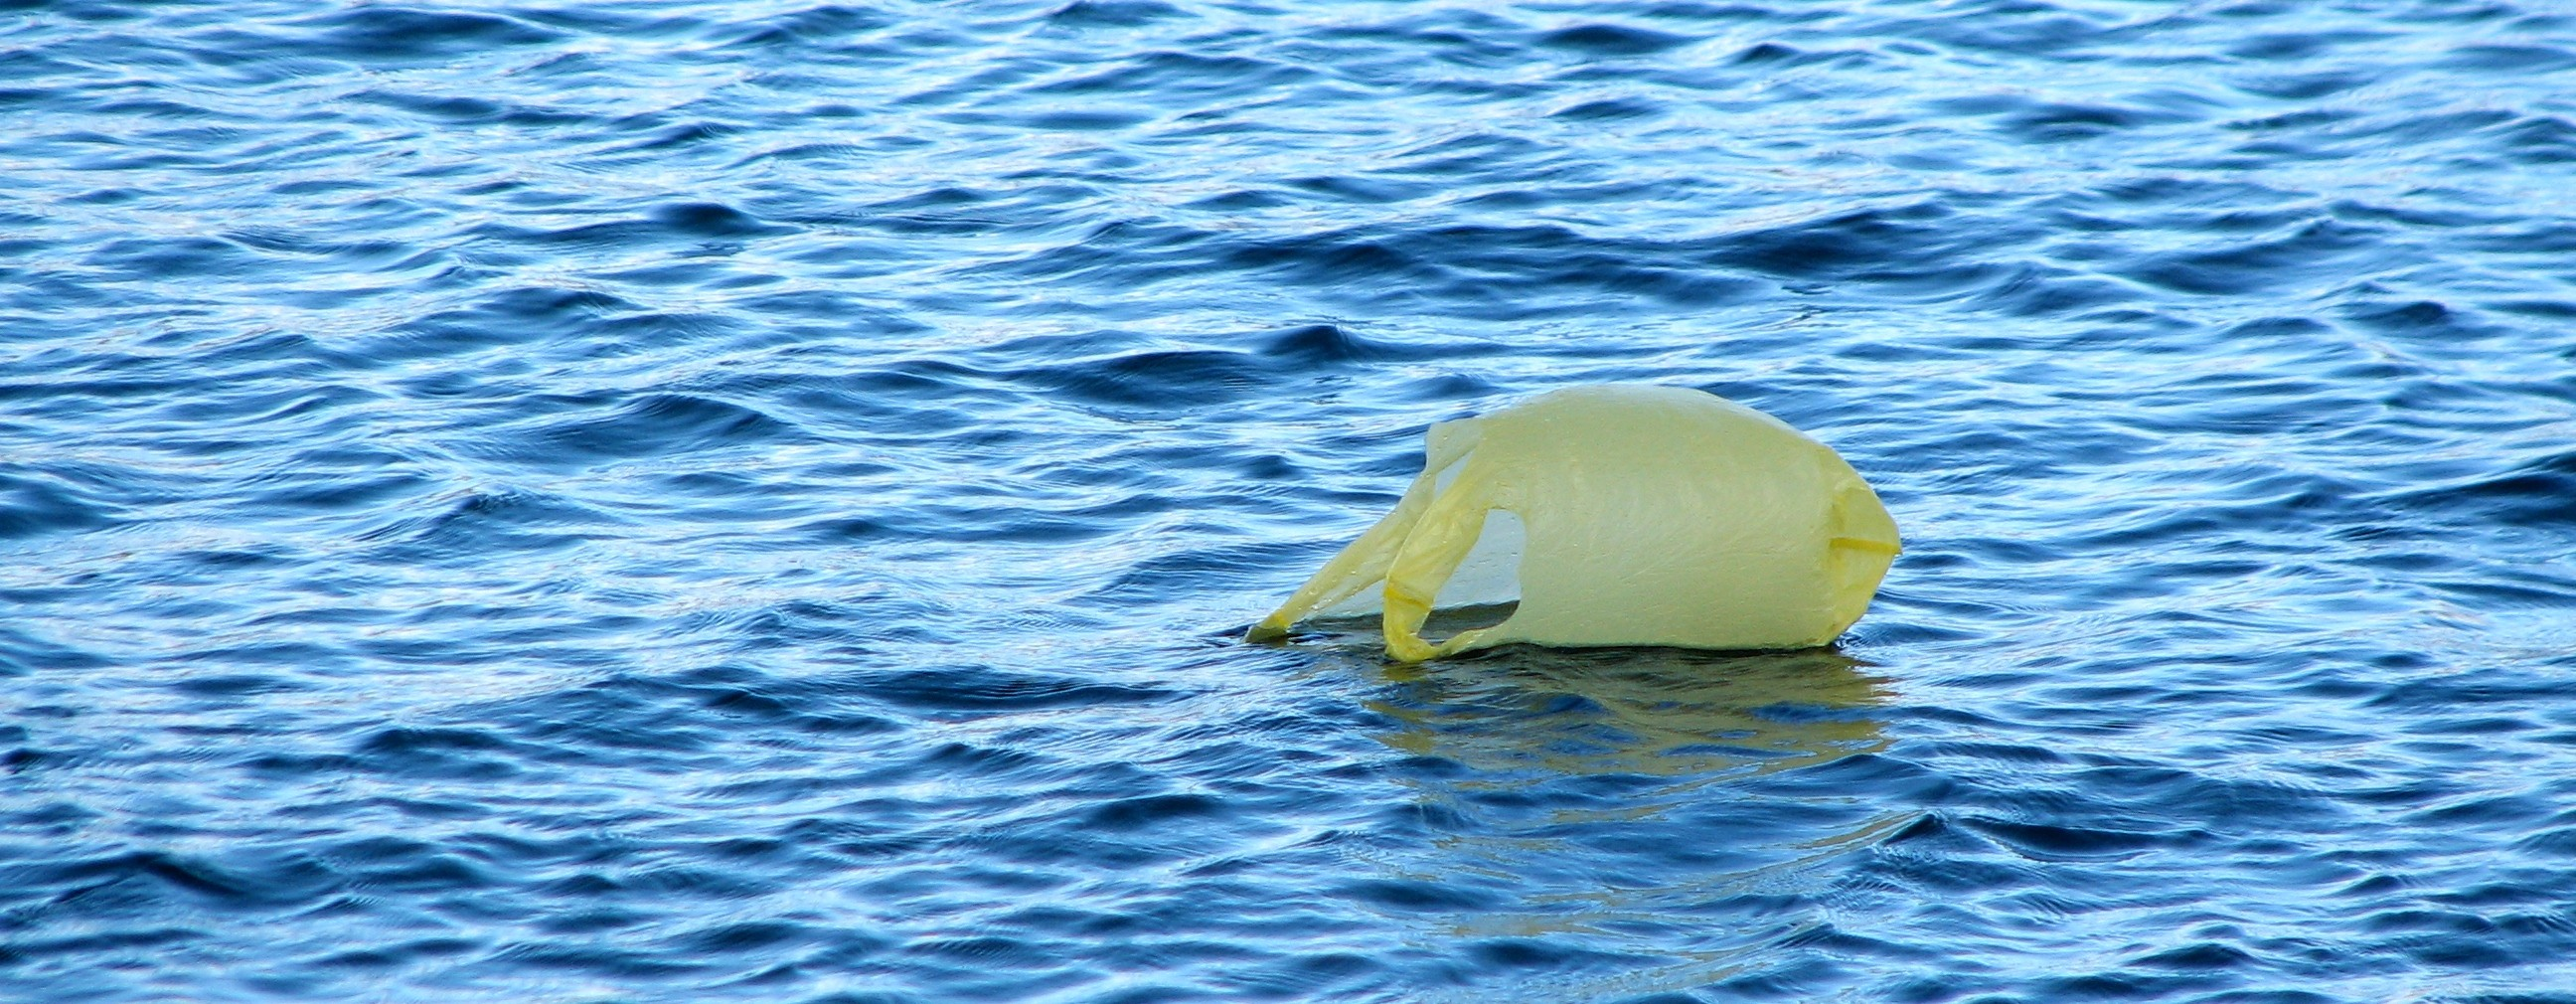 carrier bag floating in the ocean